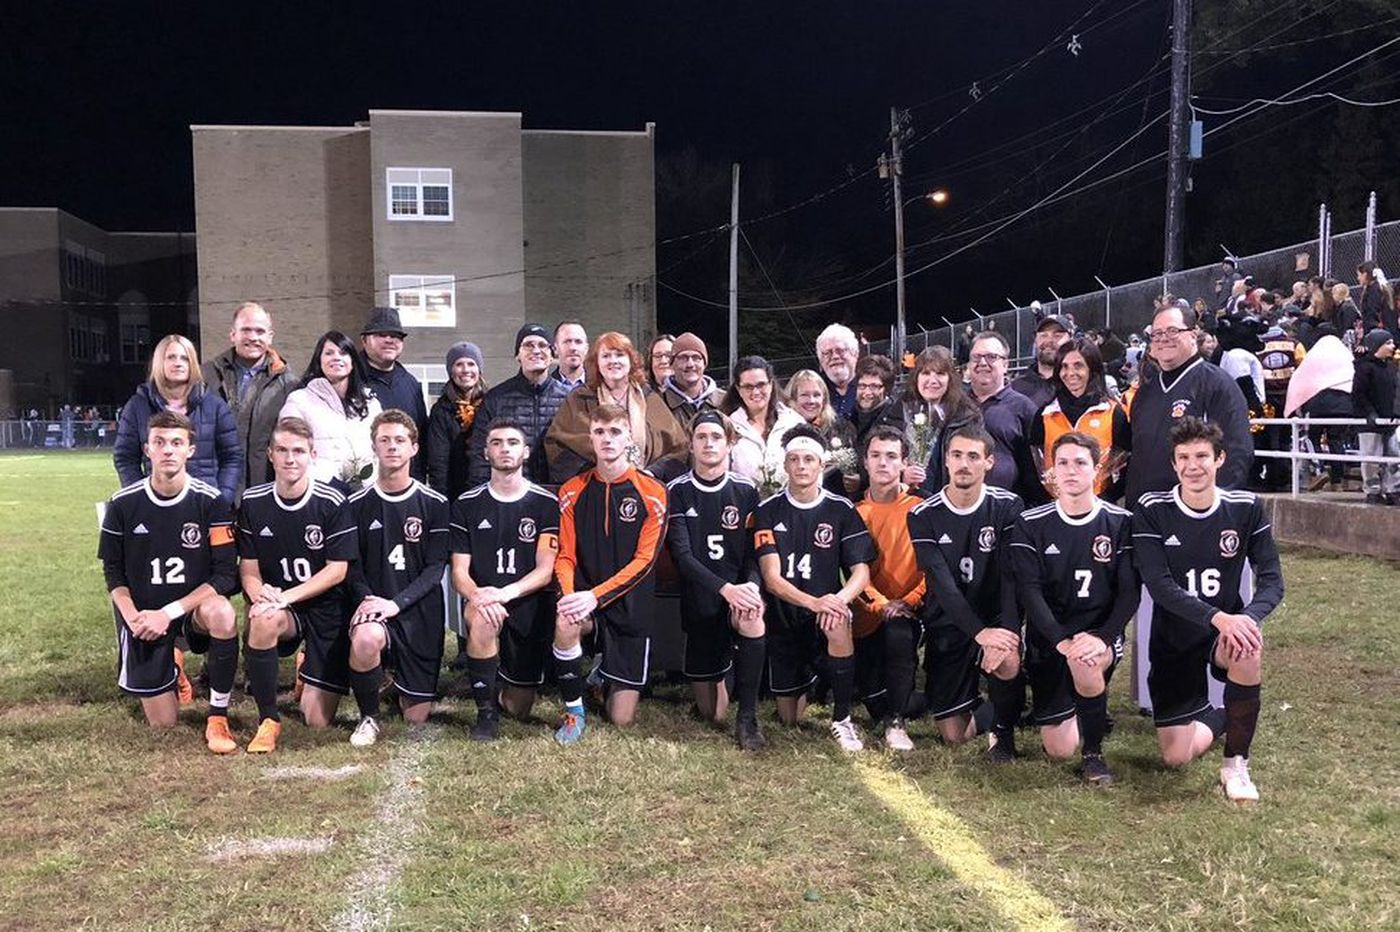 Monday's South Jersey roundup: Pitman boys' soccer advances to South Group 1 quarterfinals in win over Maple Shade